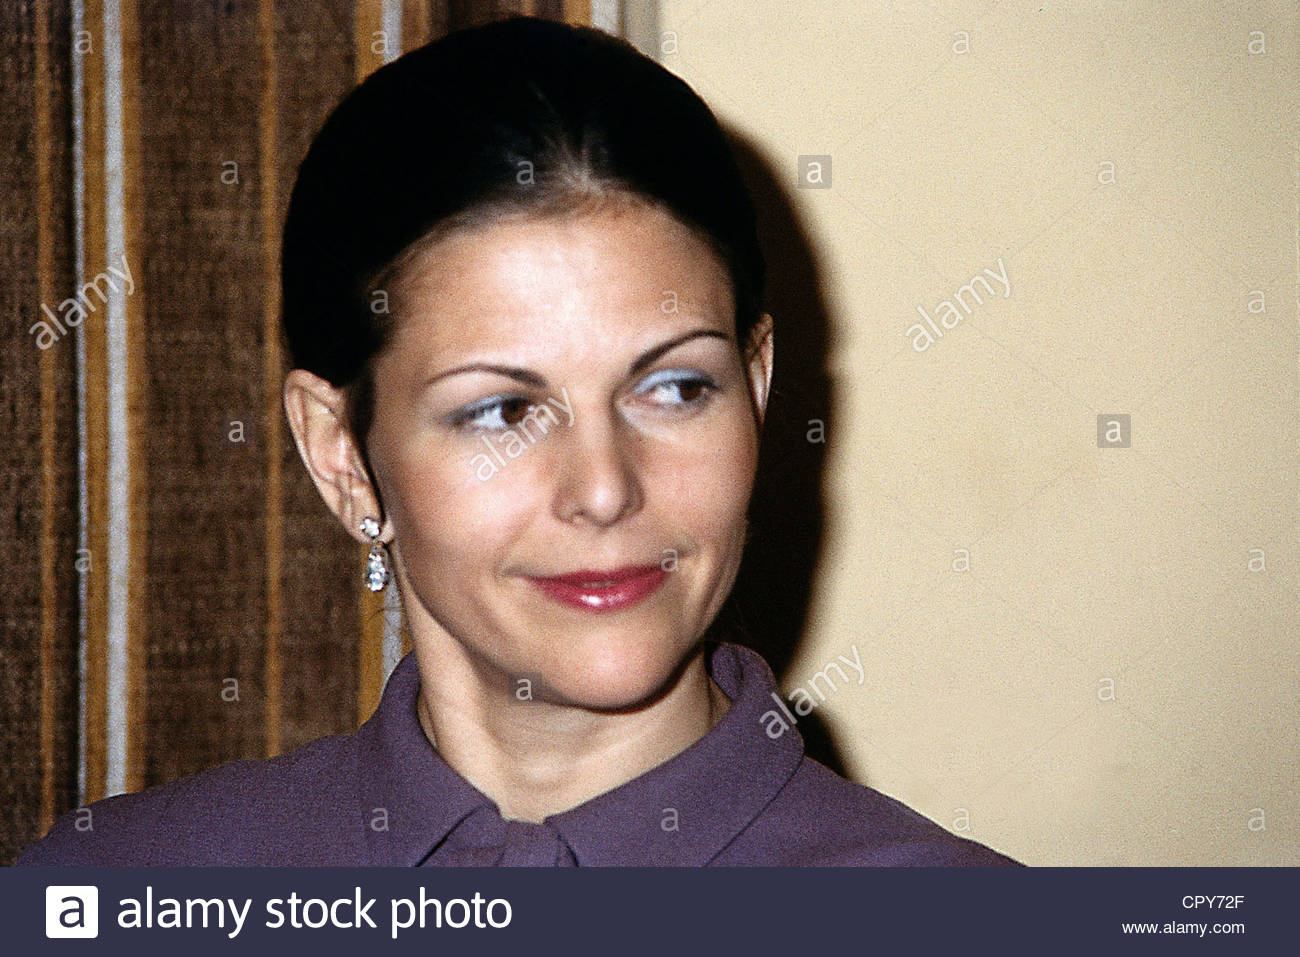 Silvia, * 23.12.1943, Queen consort of Sweden, portrait, during a visit to Germany, 1980s, - Stock Image